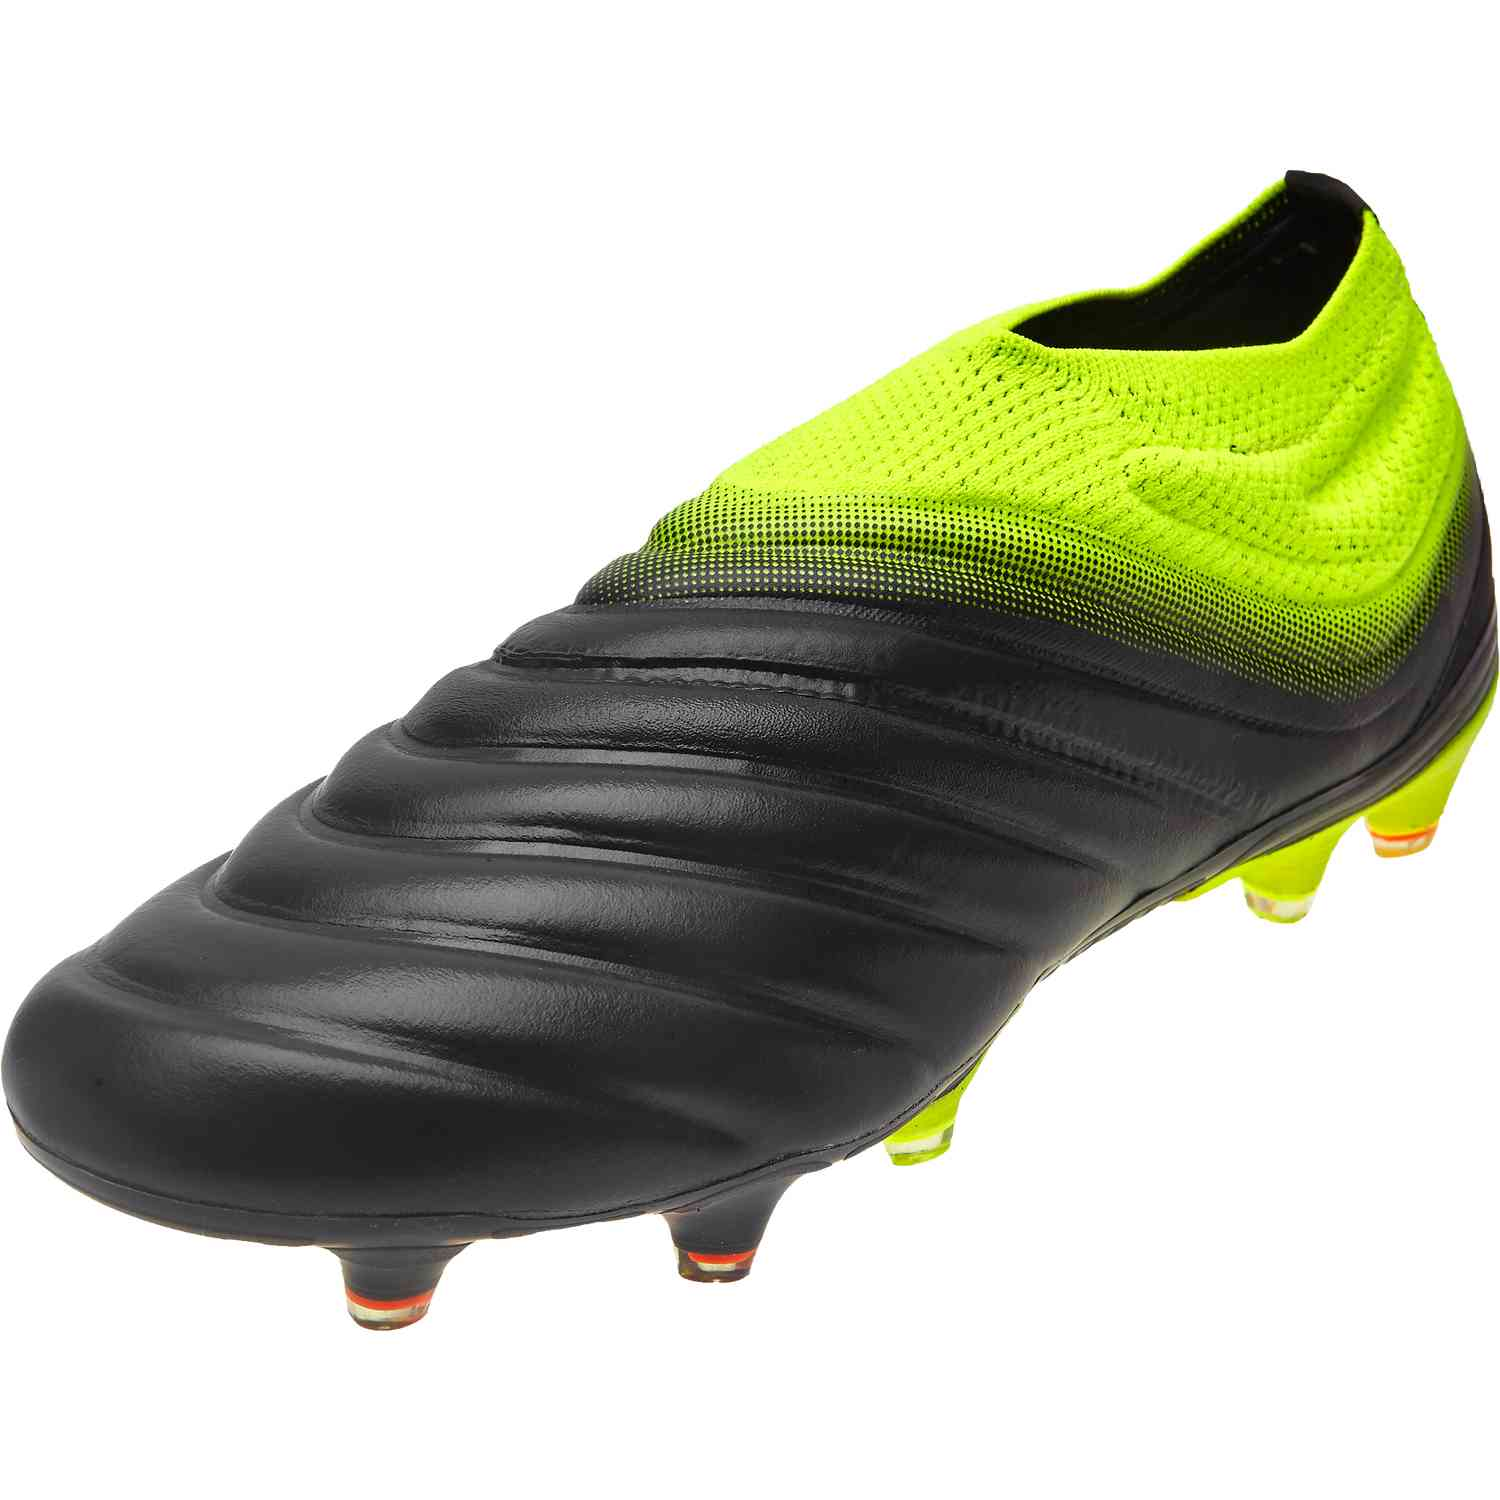 32a58851075 adidas Copa 19+ FG - Exhibit Pack - Soccer Master